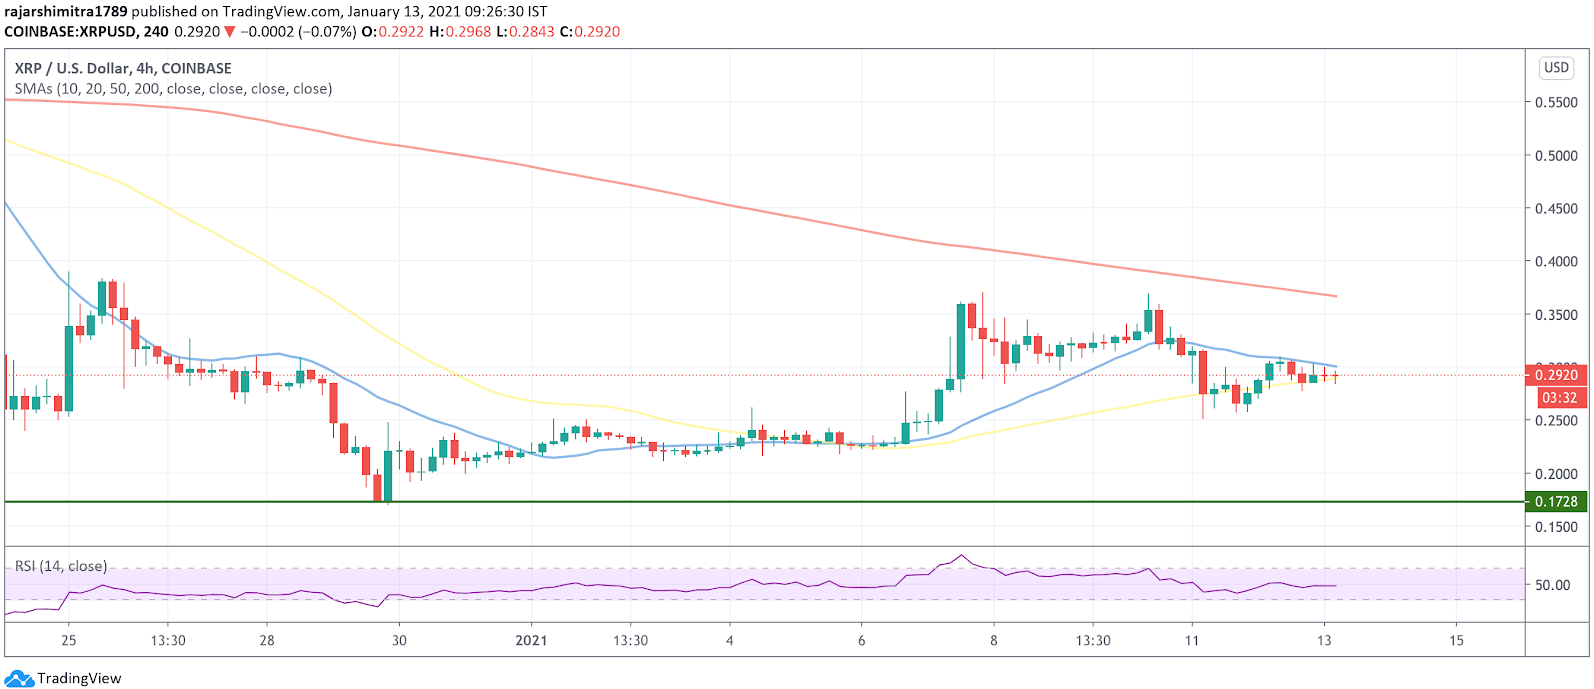 xrp/usd 4-hour chart 011321